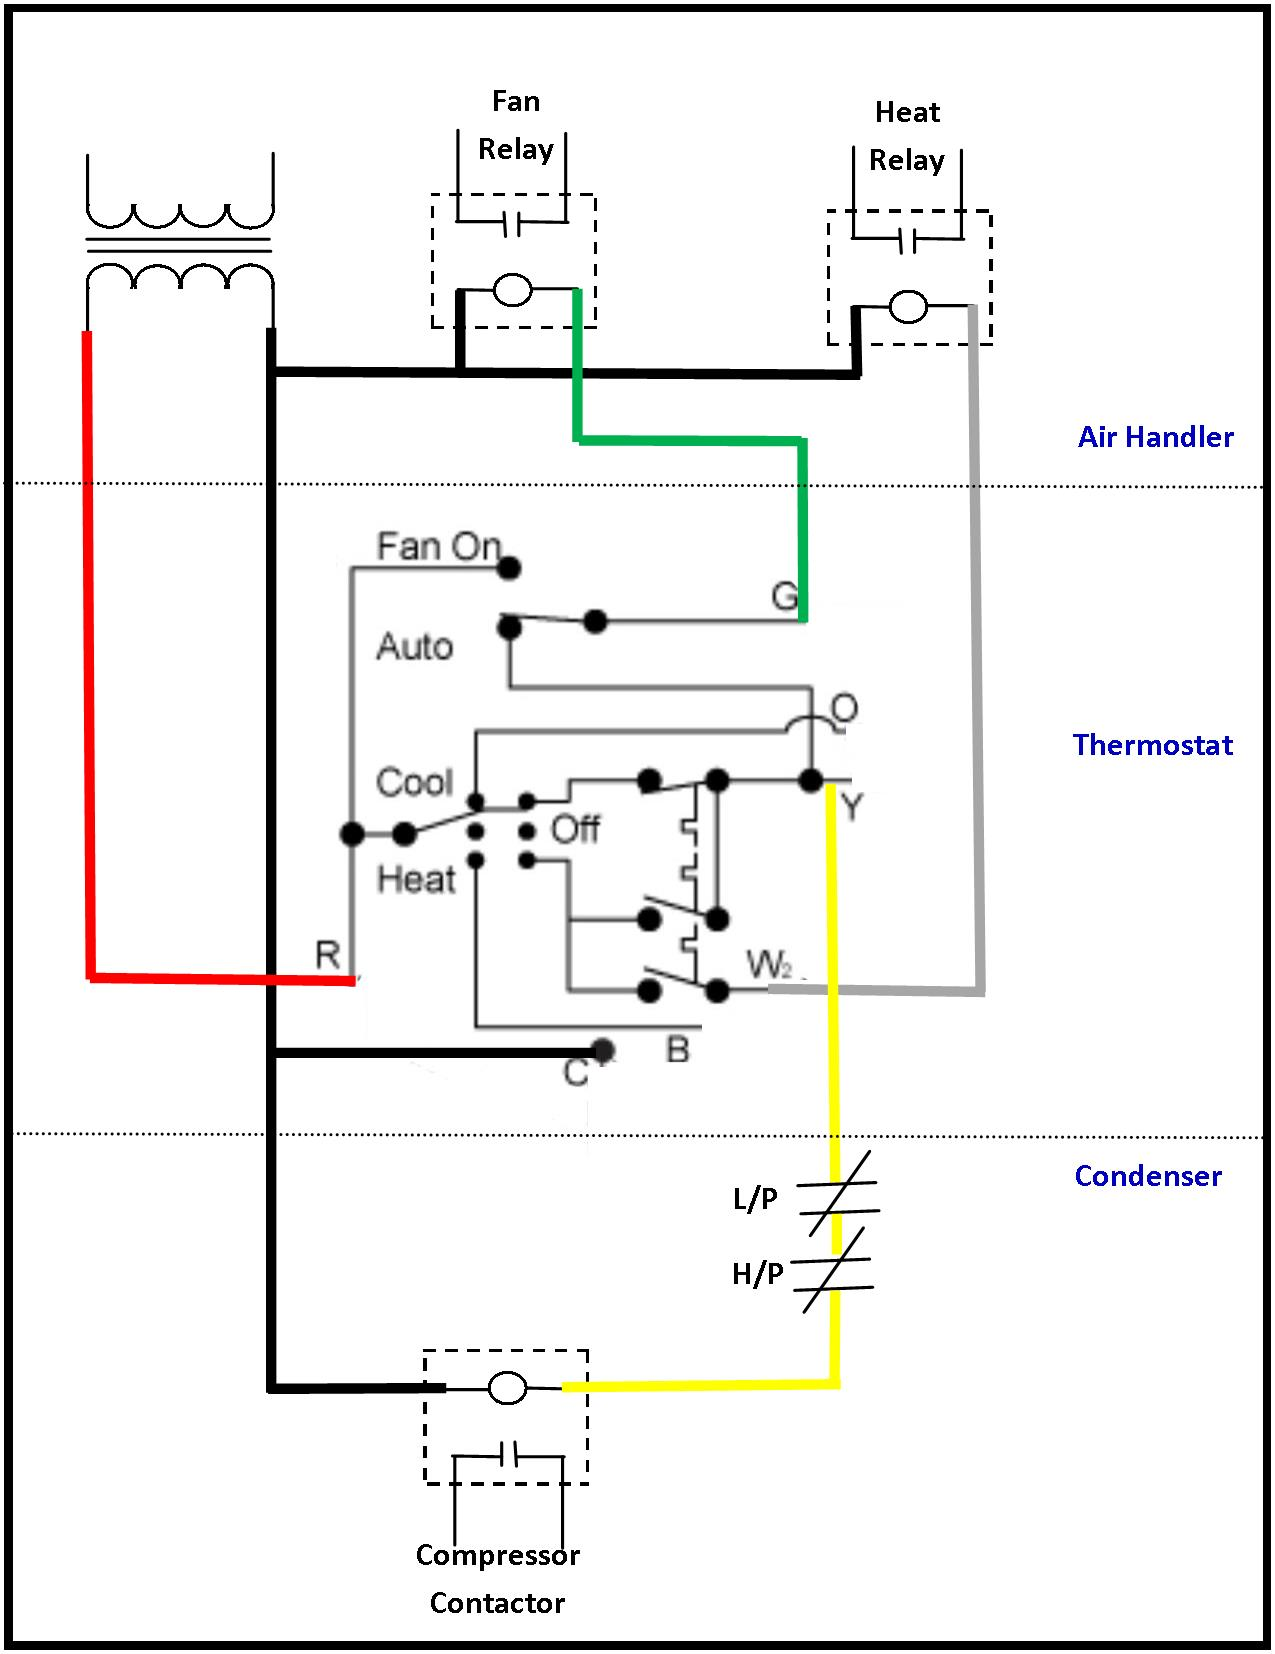 Wiring Diagram For Air Conditioner | Wiring Diagram on